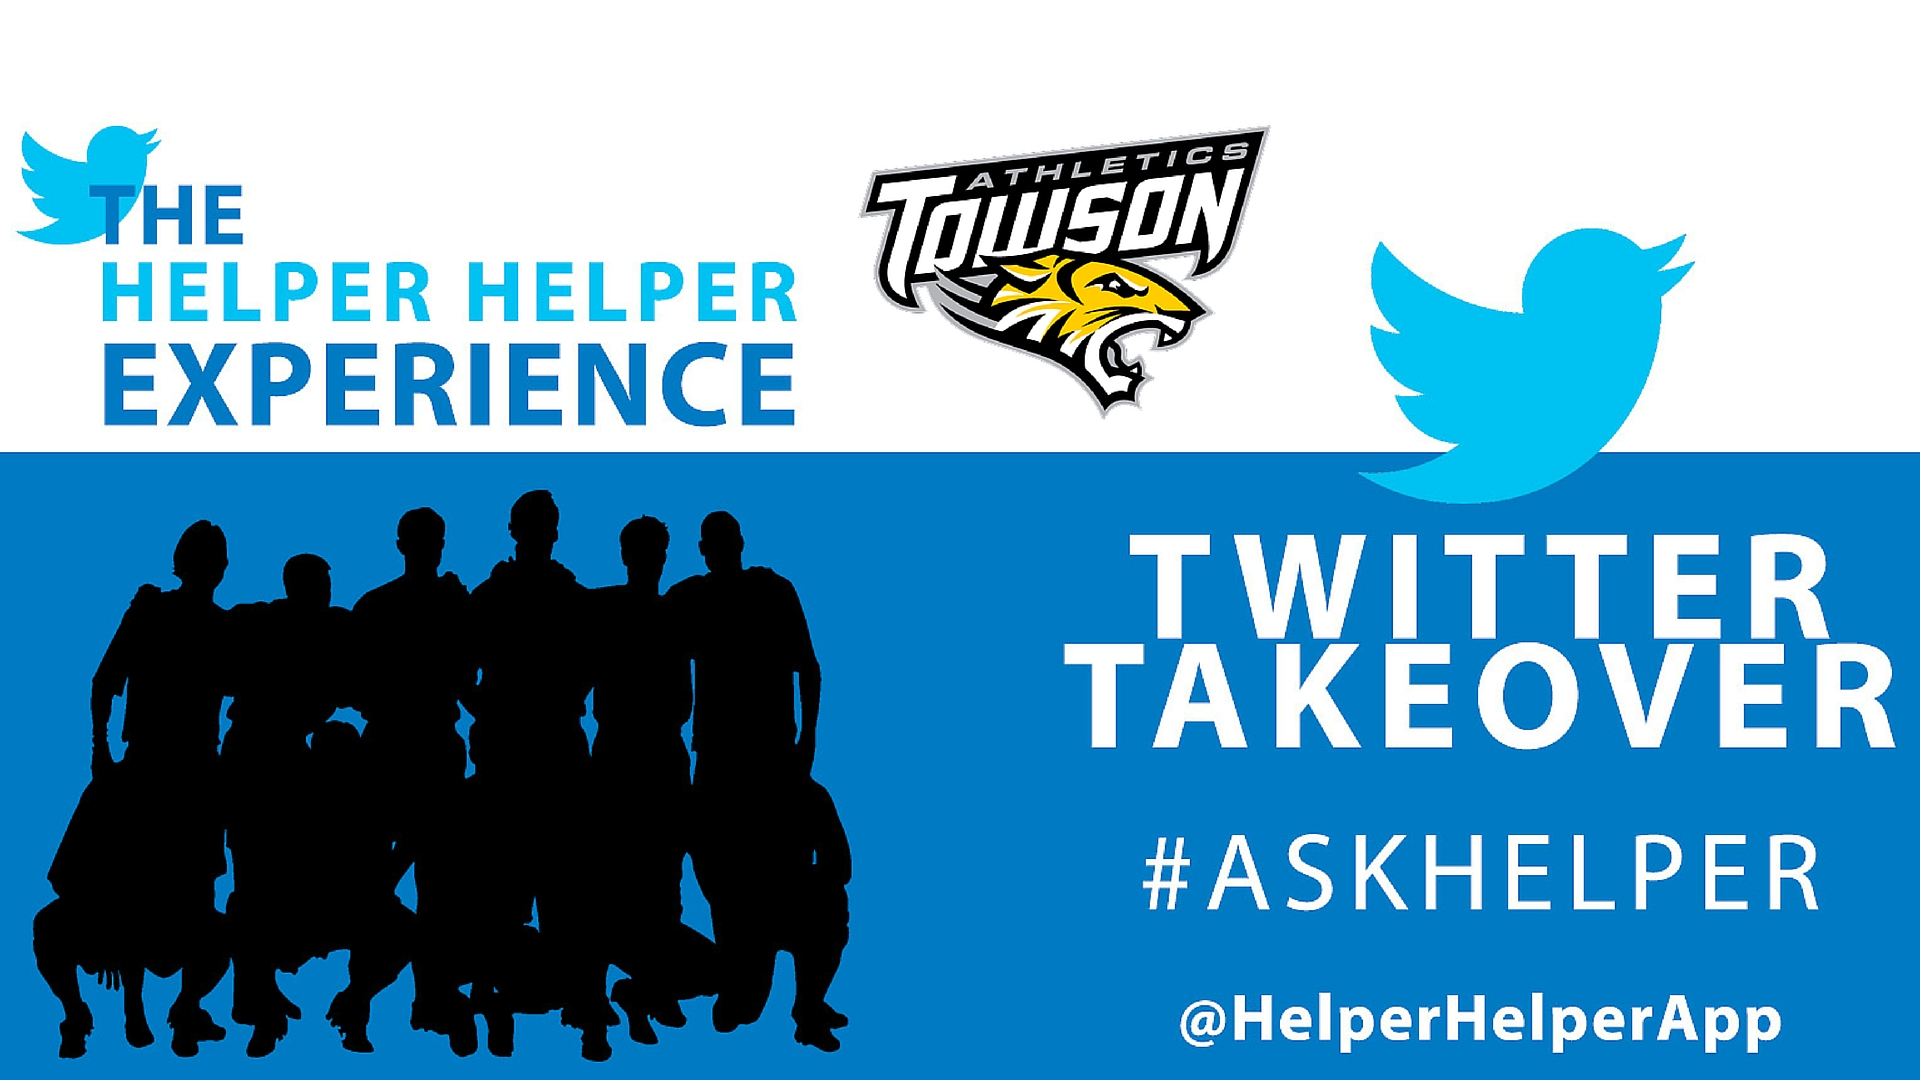 Towson Athletics Twitter Takeover